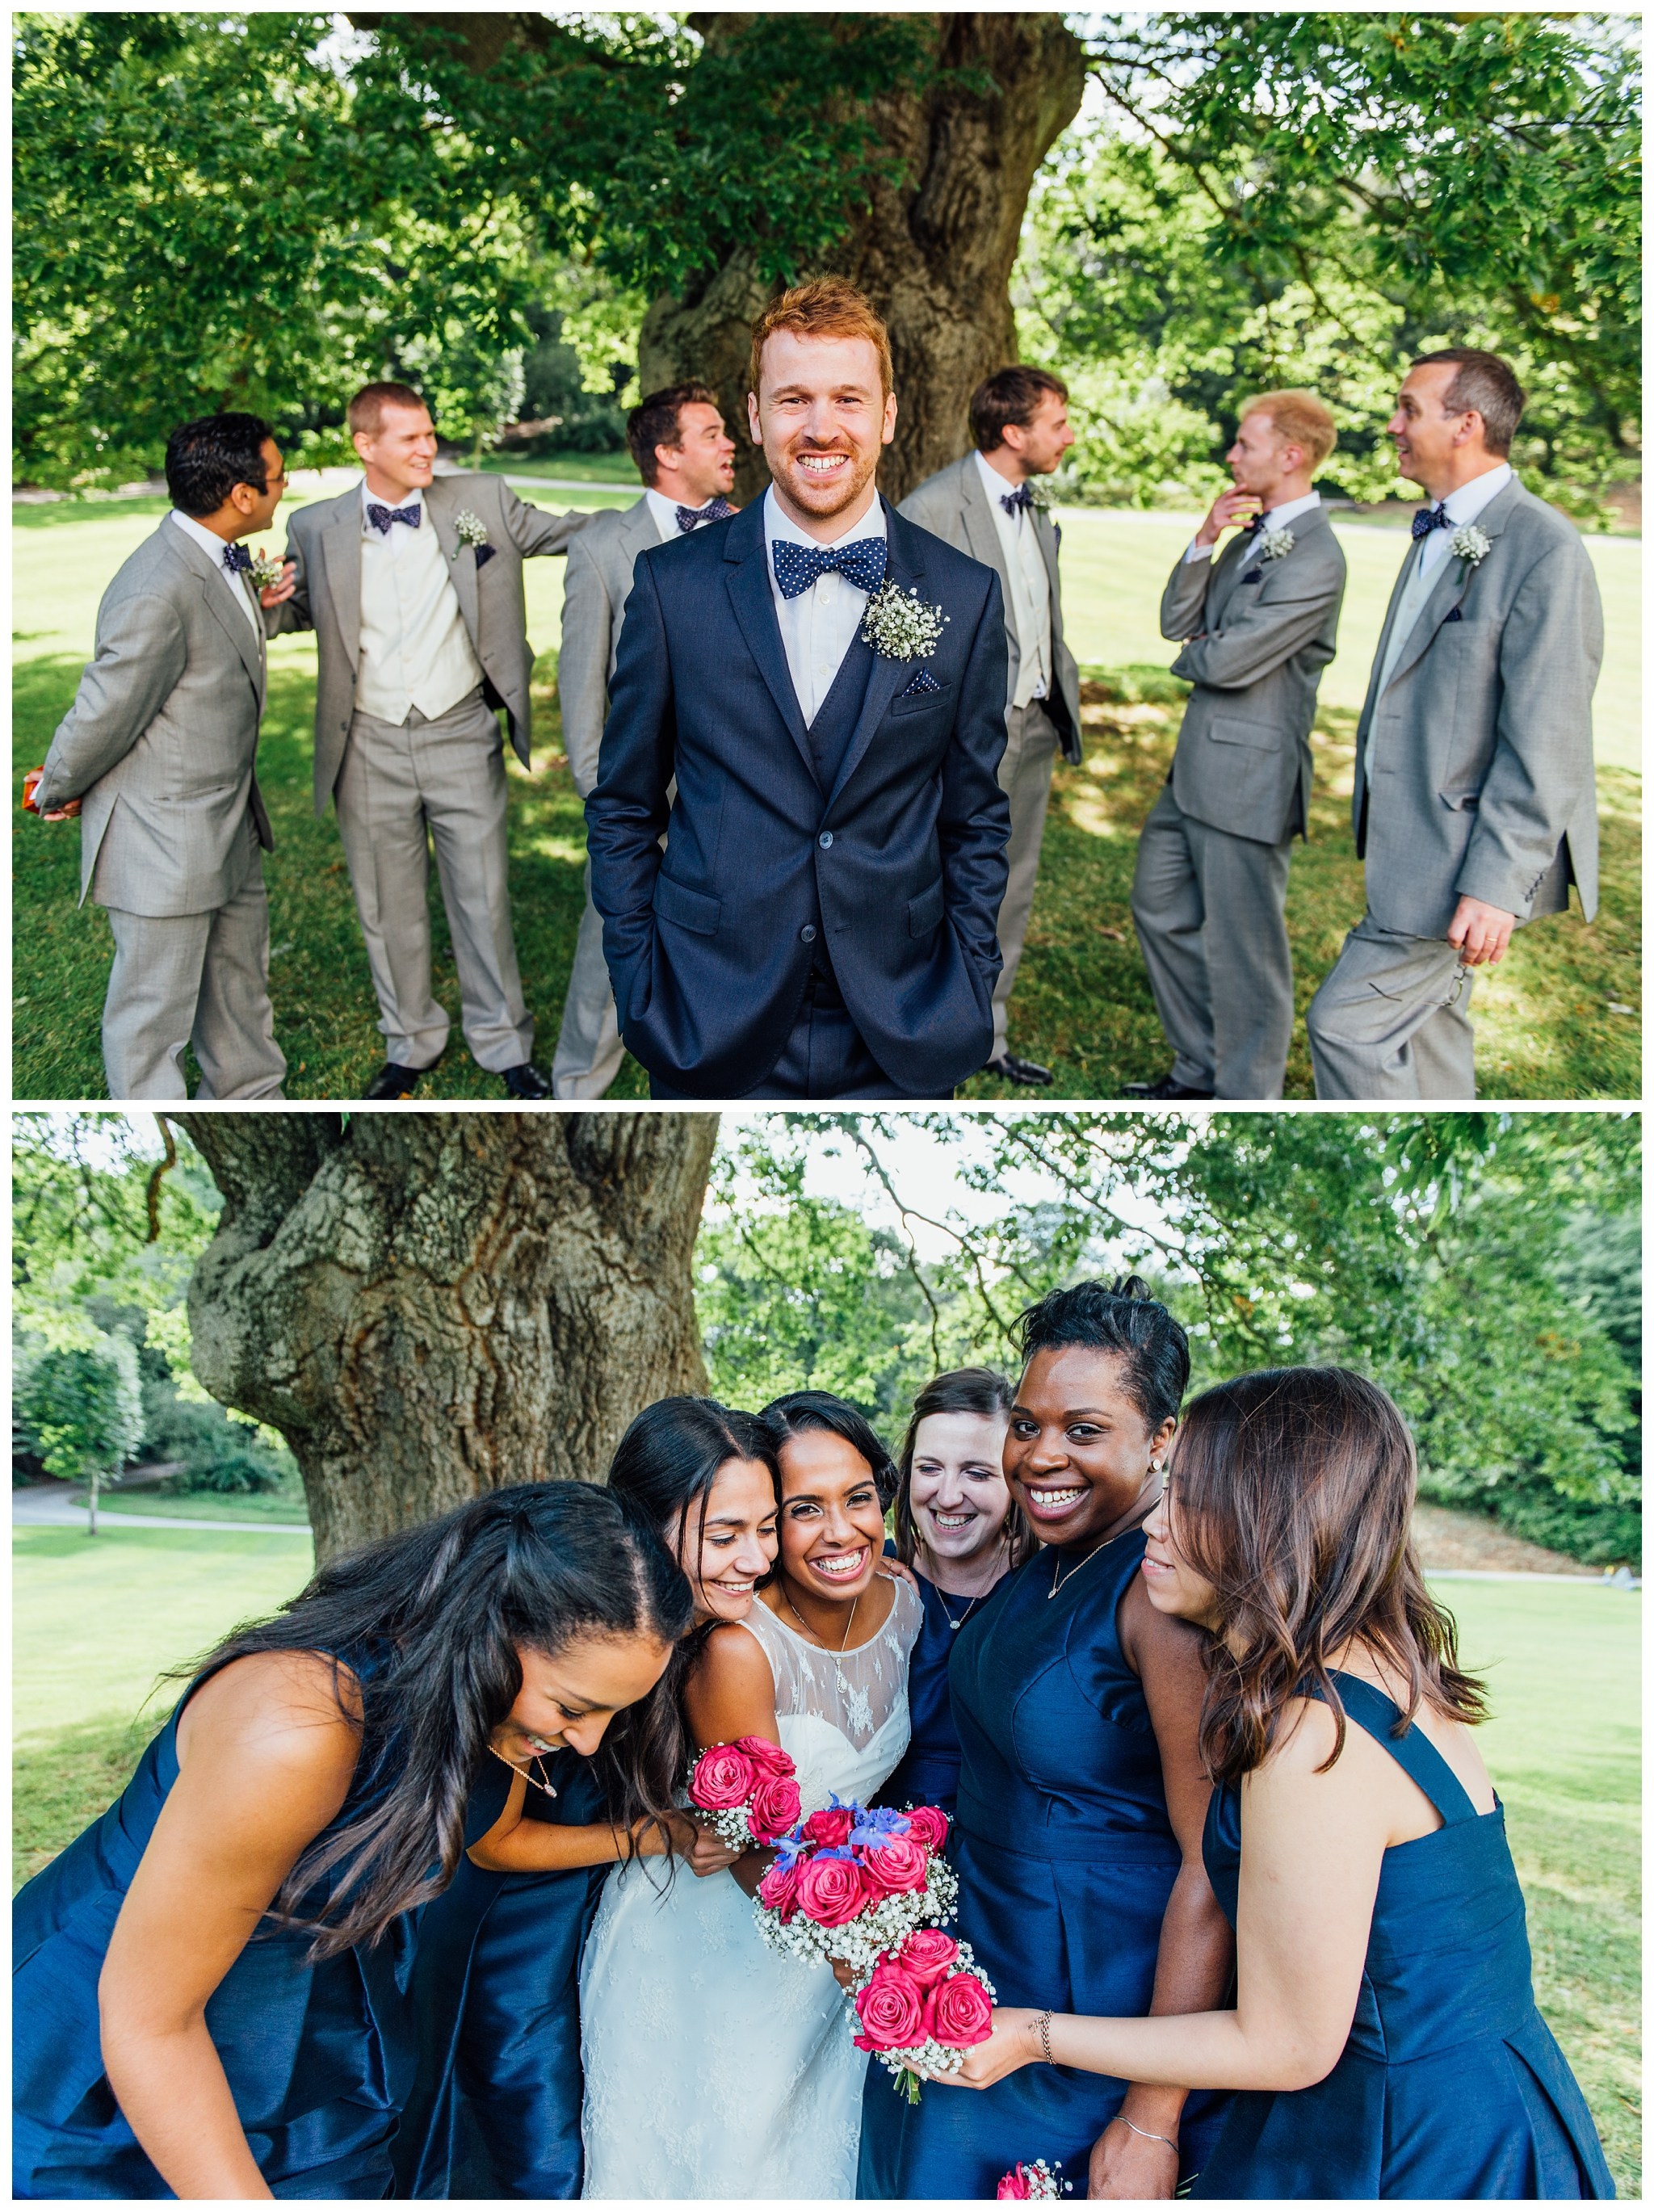 Rich&Dhikshana_Lupton_House_Devon_Hindu_English_Fushion_Wedding_0028.jpg